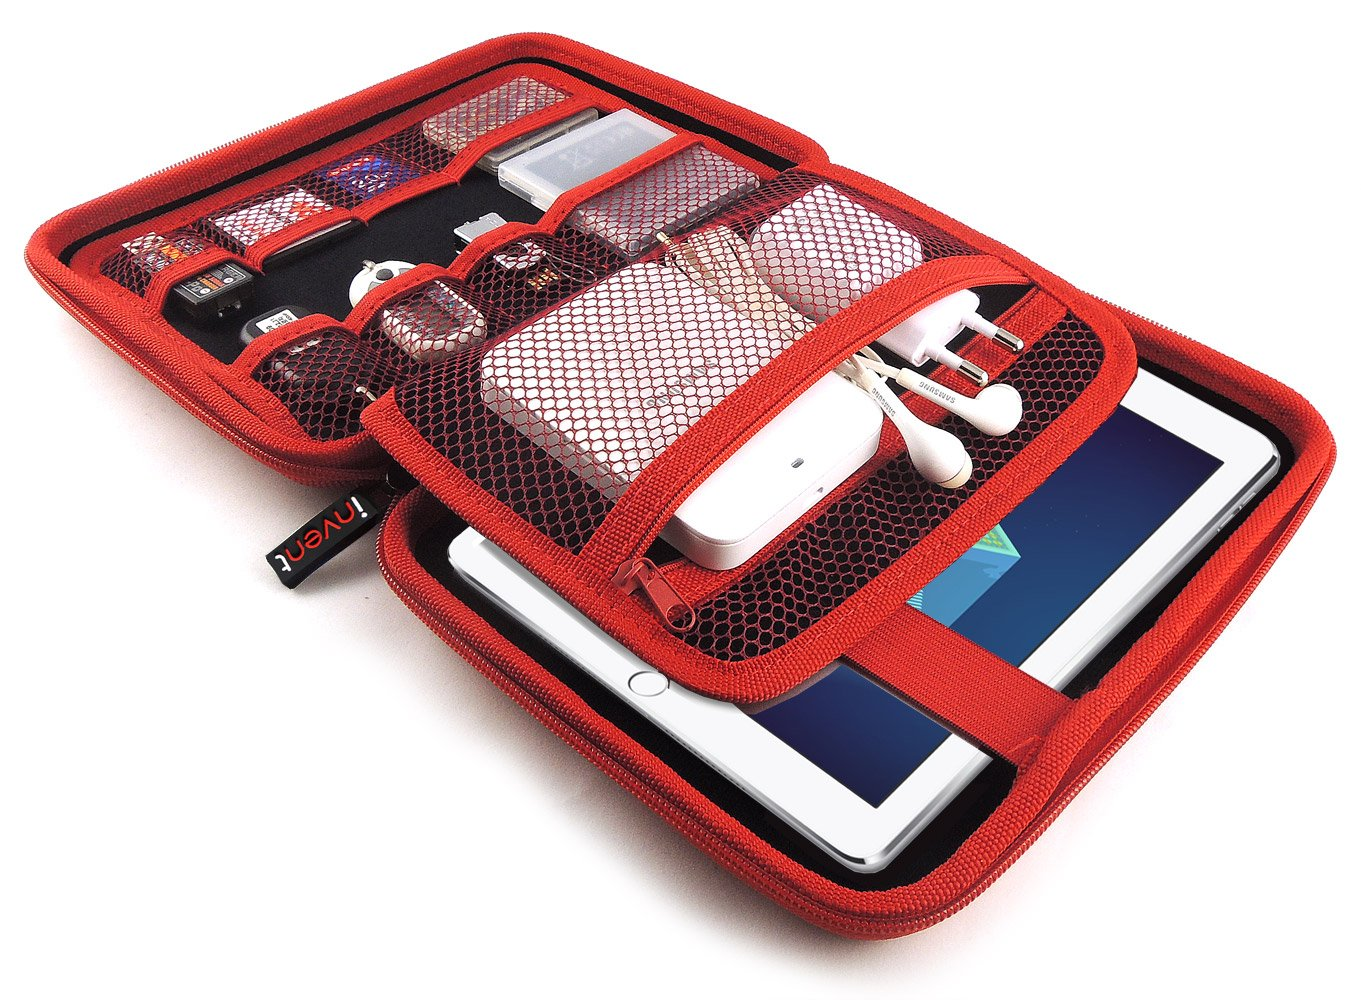 Easily organize all your electronics in this case